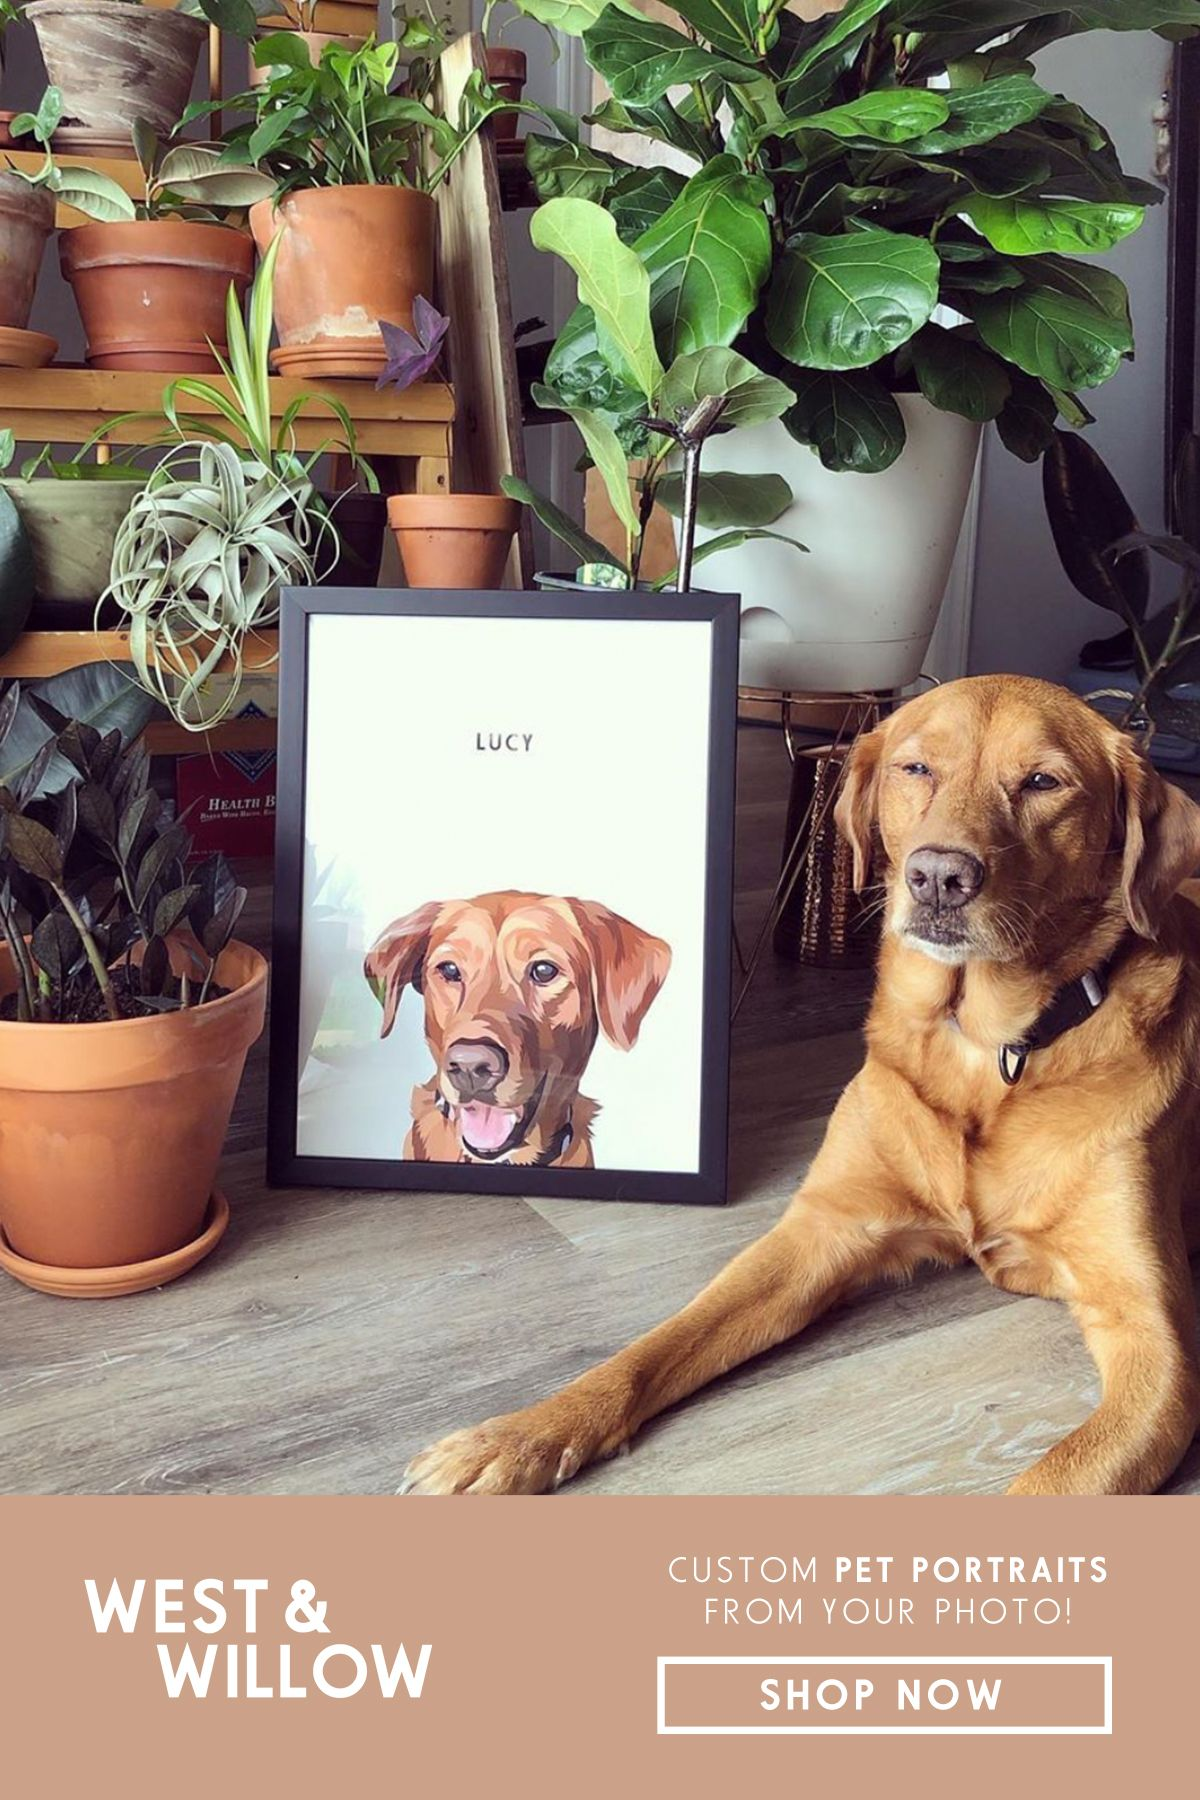 Personalize your home with a modern pet portrait! Simply